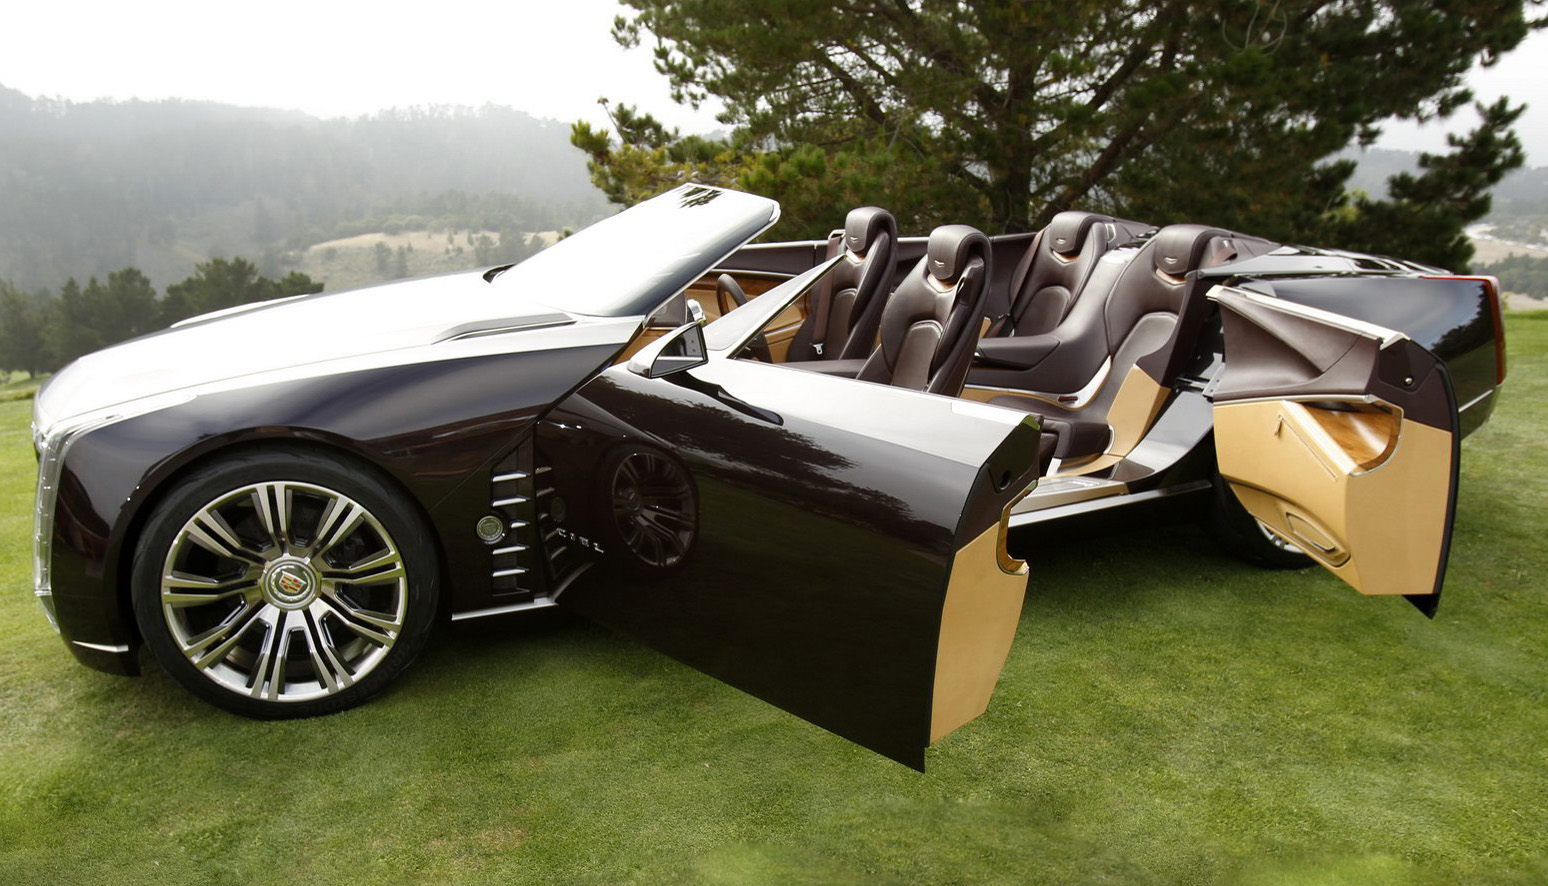 2011 cadillac ciel 4 door convertible car. Black Bedroom Furniture Sets. Home Design Ideas